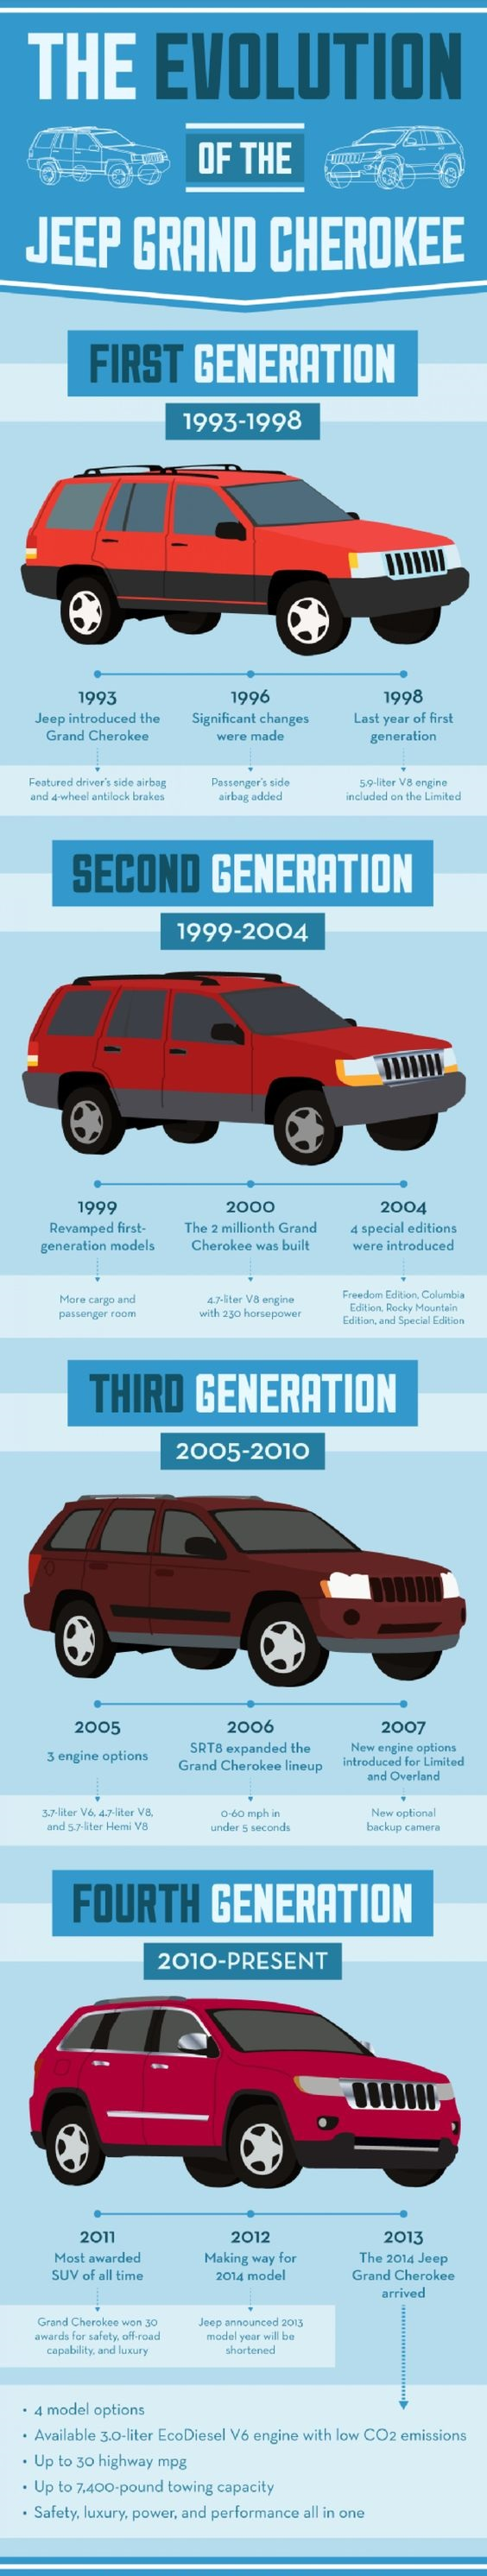 Check Out The Evolution Of The Jeep Grand Cherokee